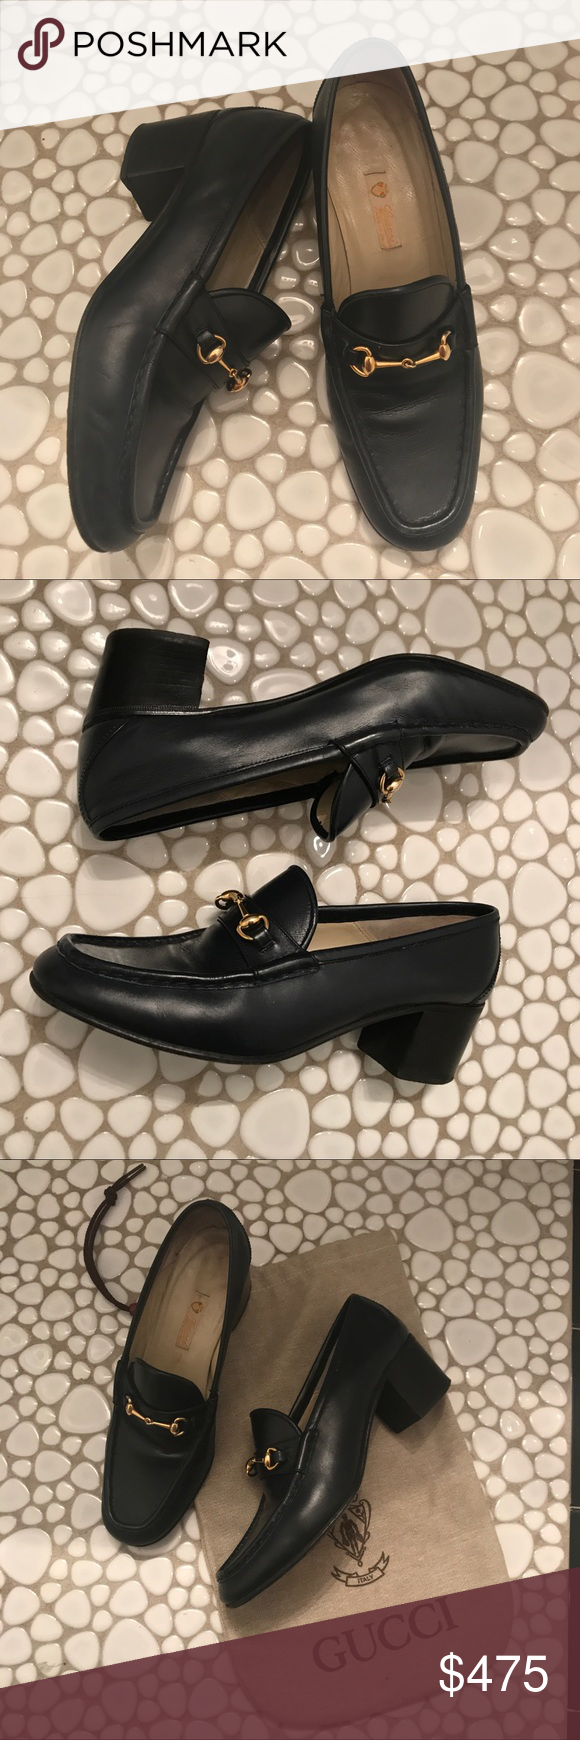 9362df90b11 Vintage Navy Blue Gucci Horsebit Loafers - amazing These beautiful navy  Gucci loafers are like dinosaurs